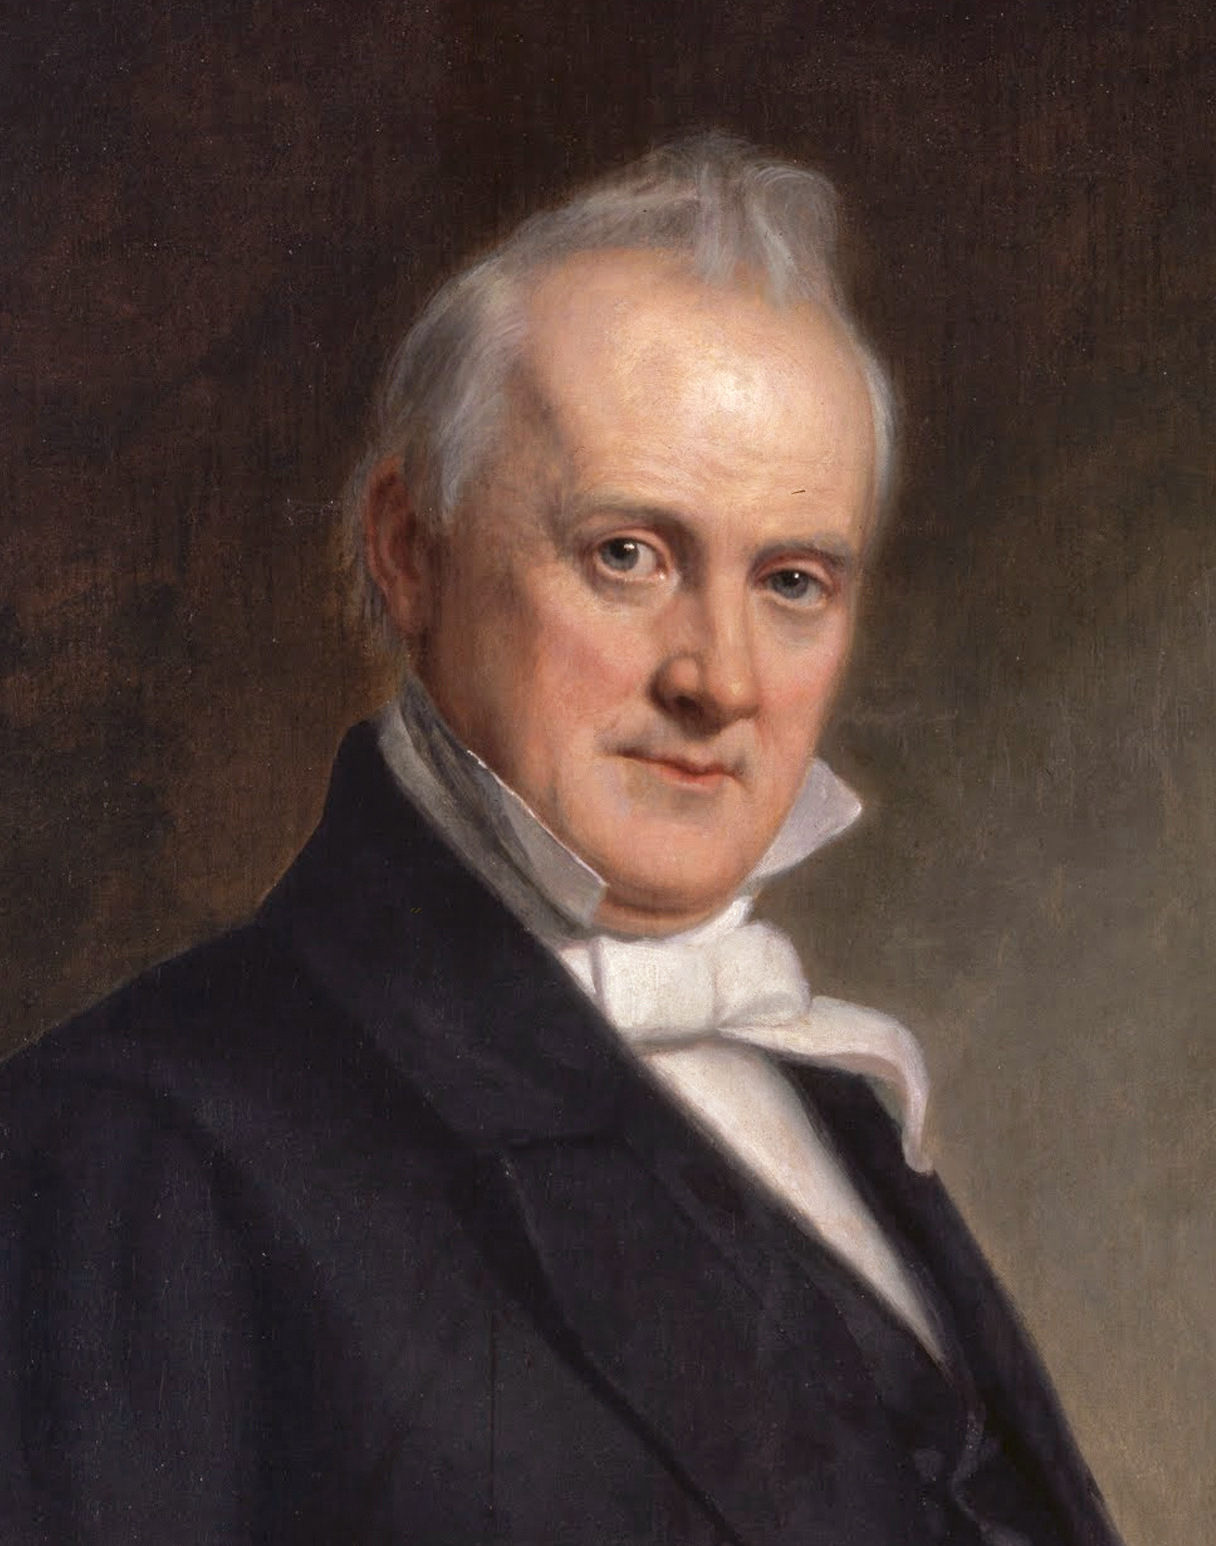 from Jerome was james buchanan gay